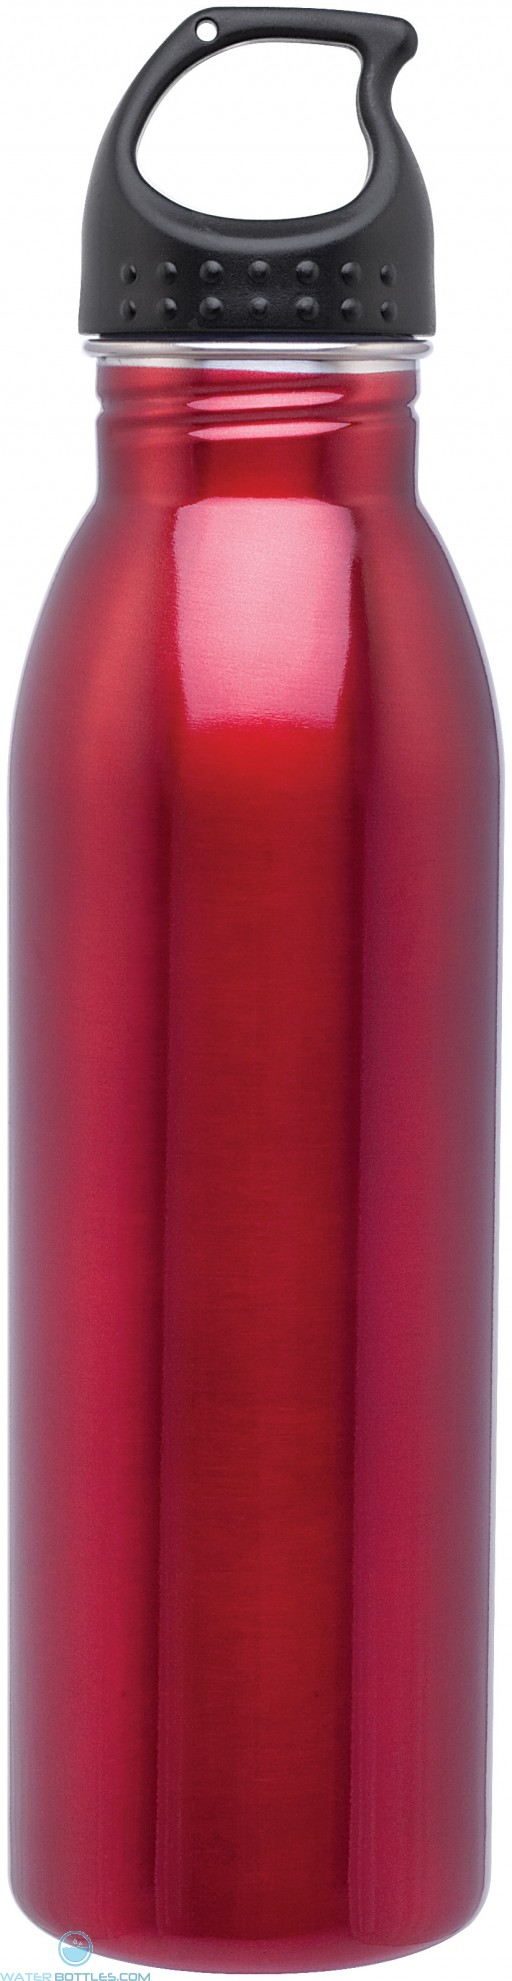 H2Go Solus Water Bottles | 24 oz - Red